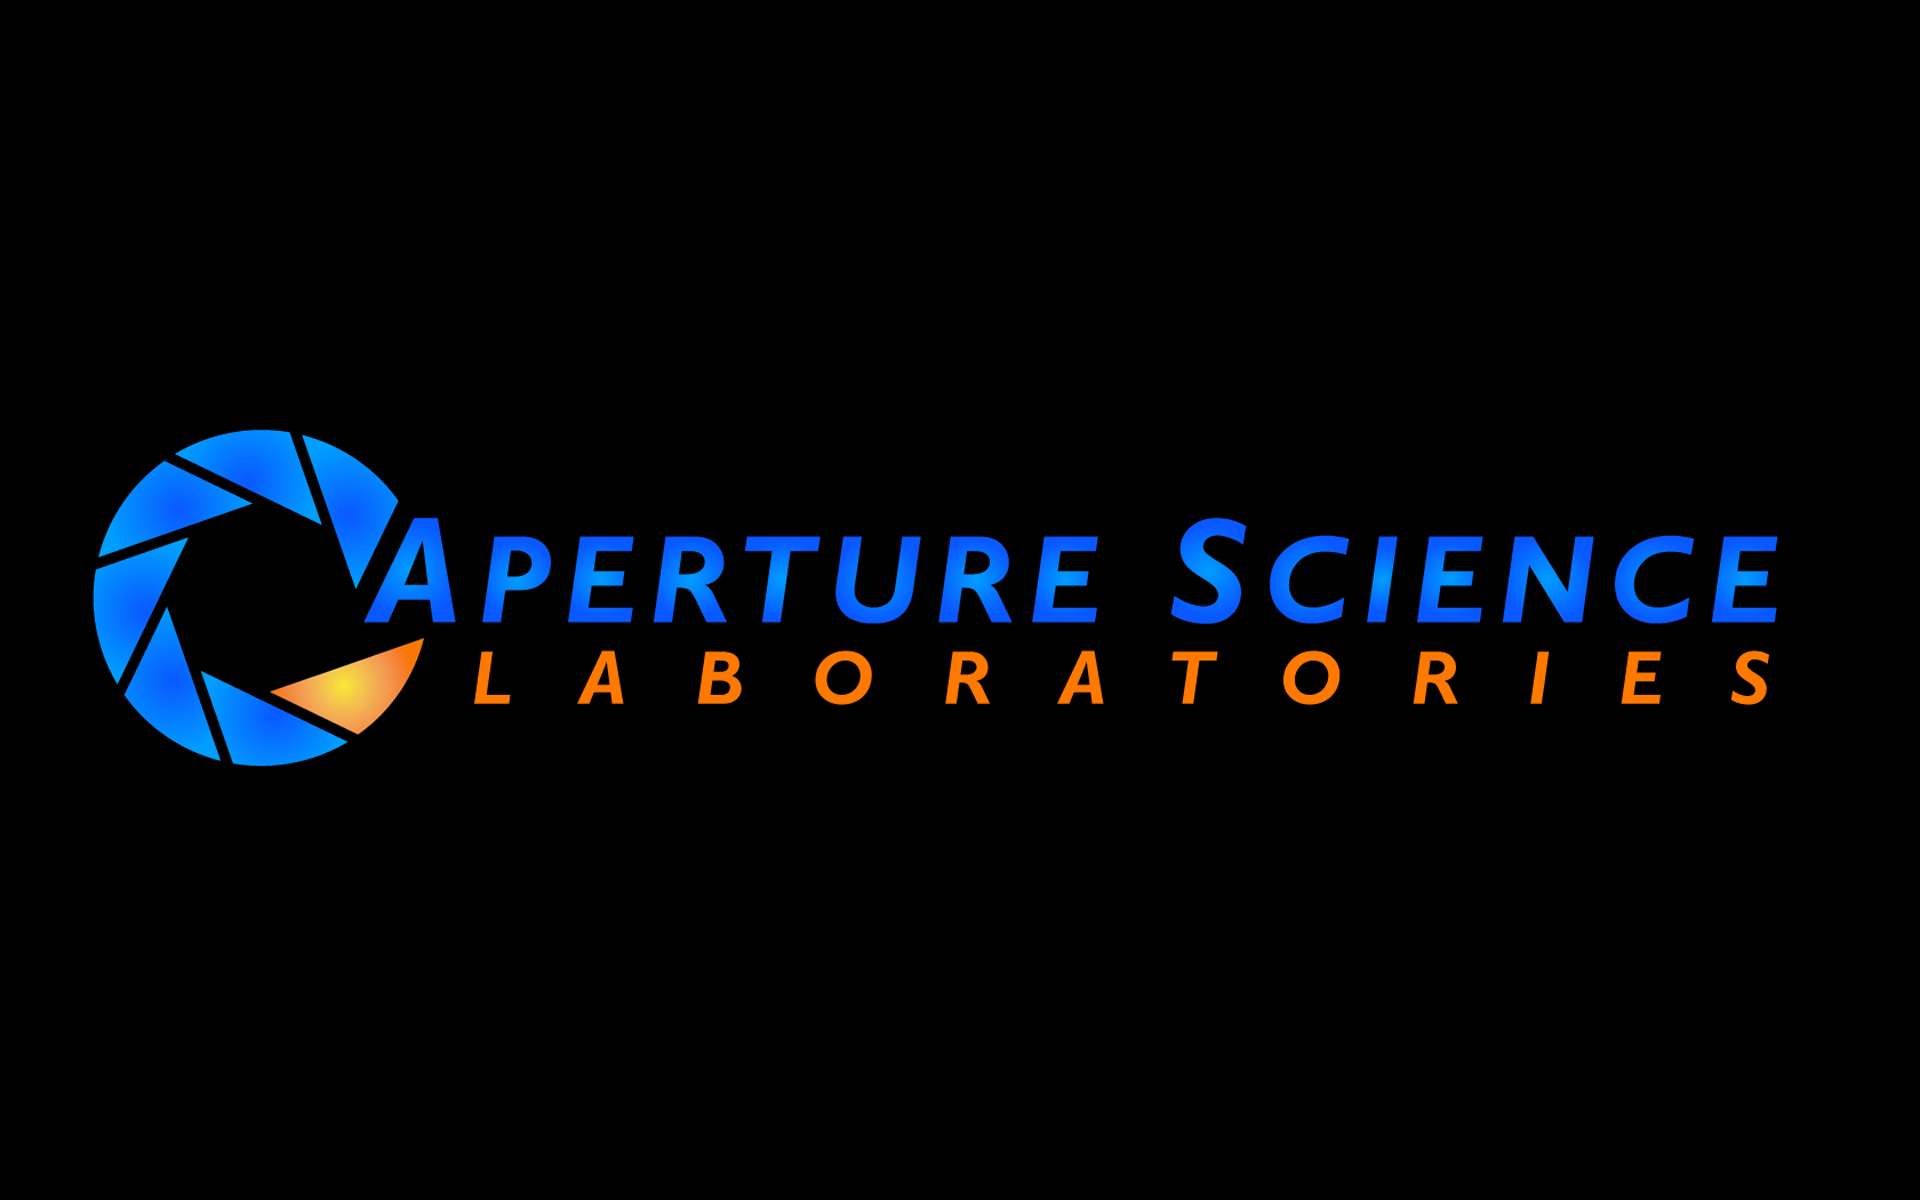 Aperture Science Wallpaper HD - WallpaperSafari